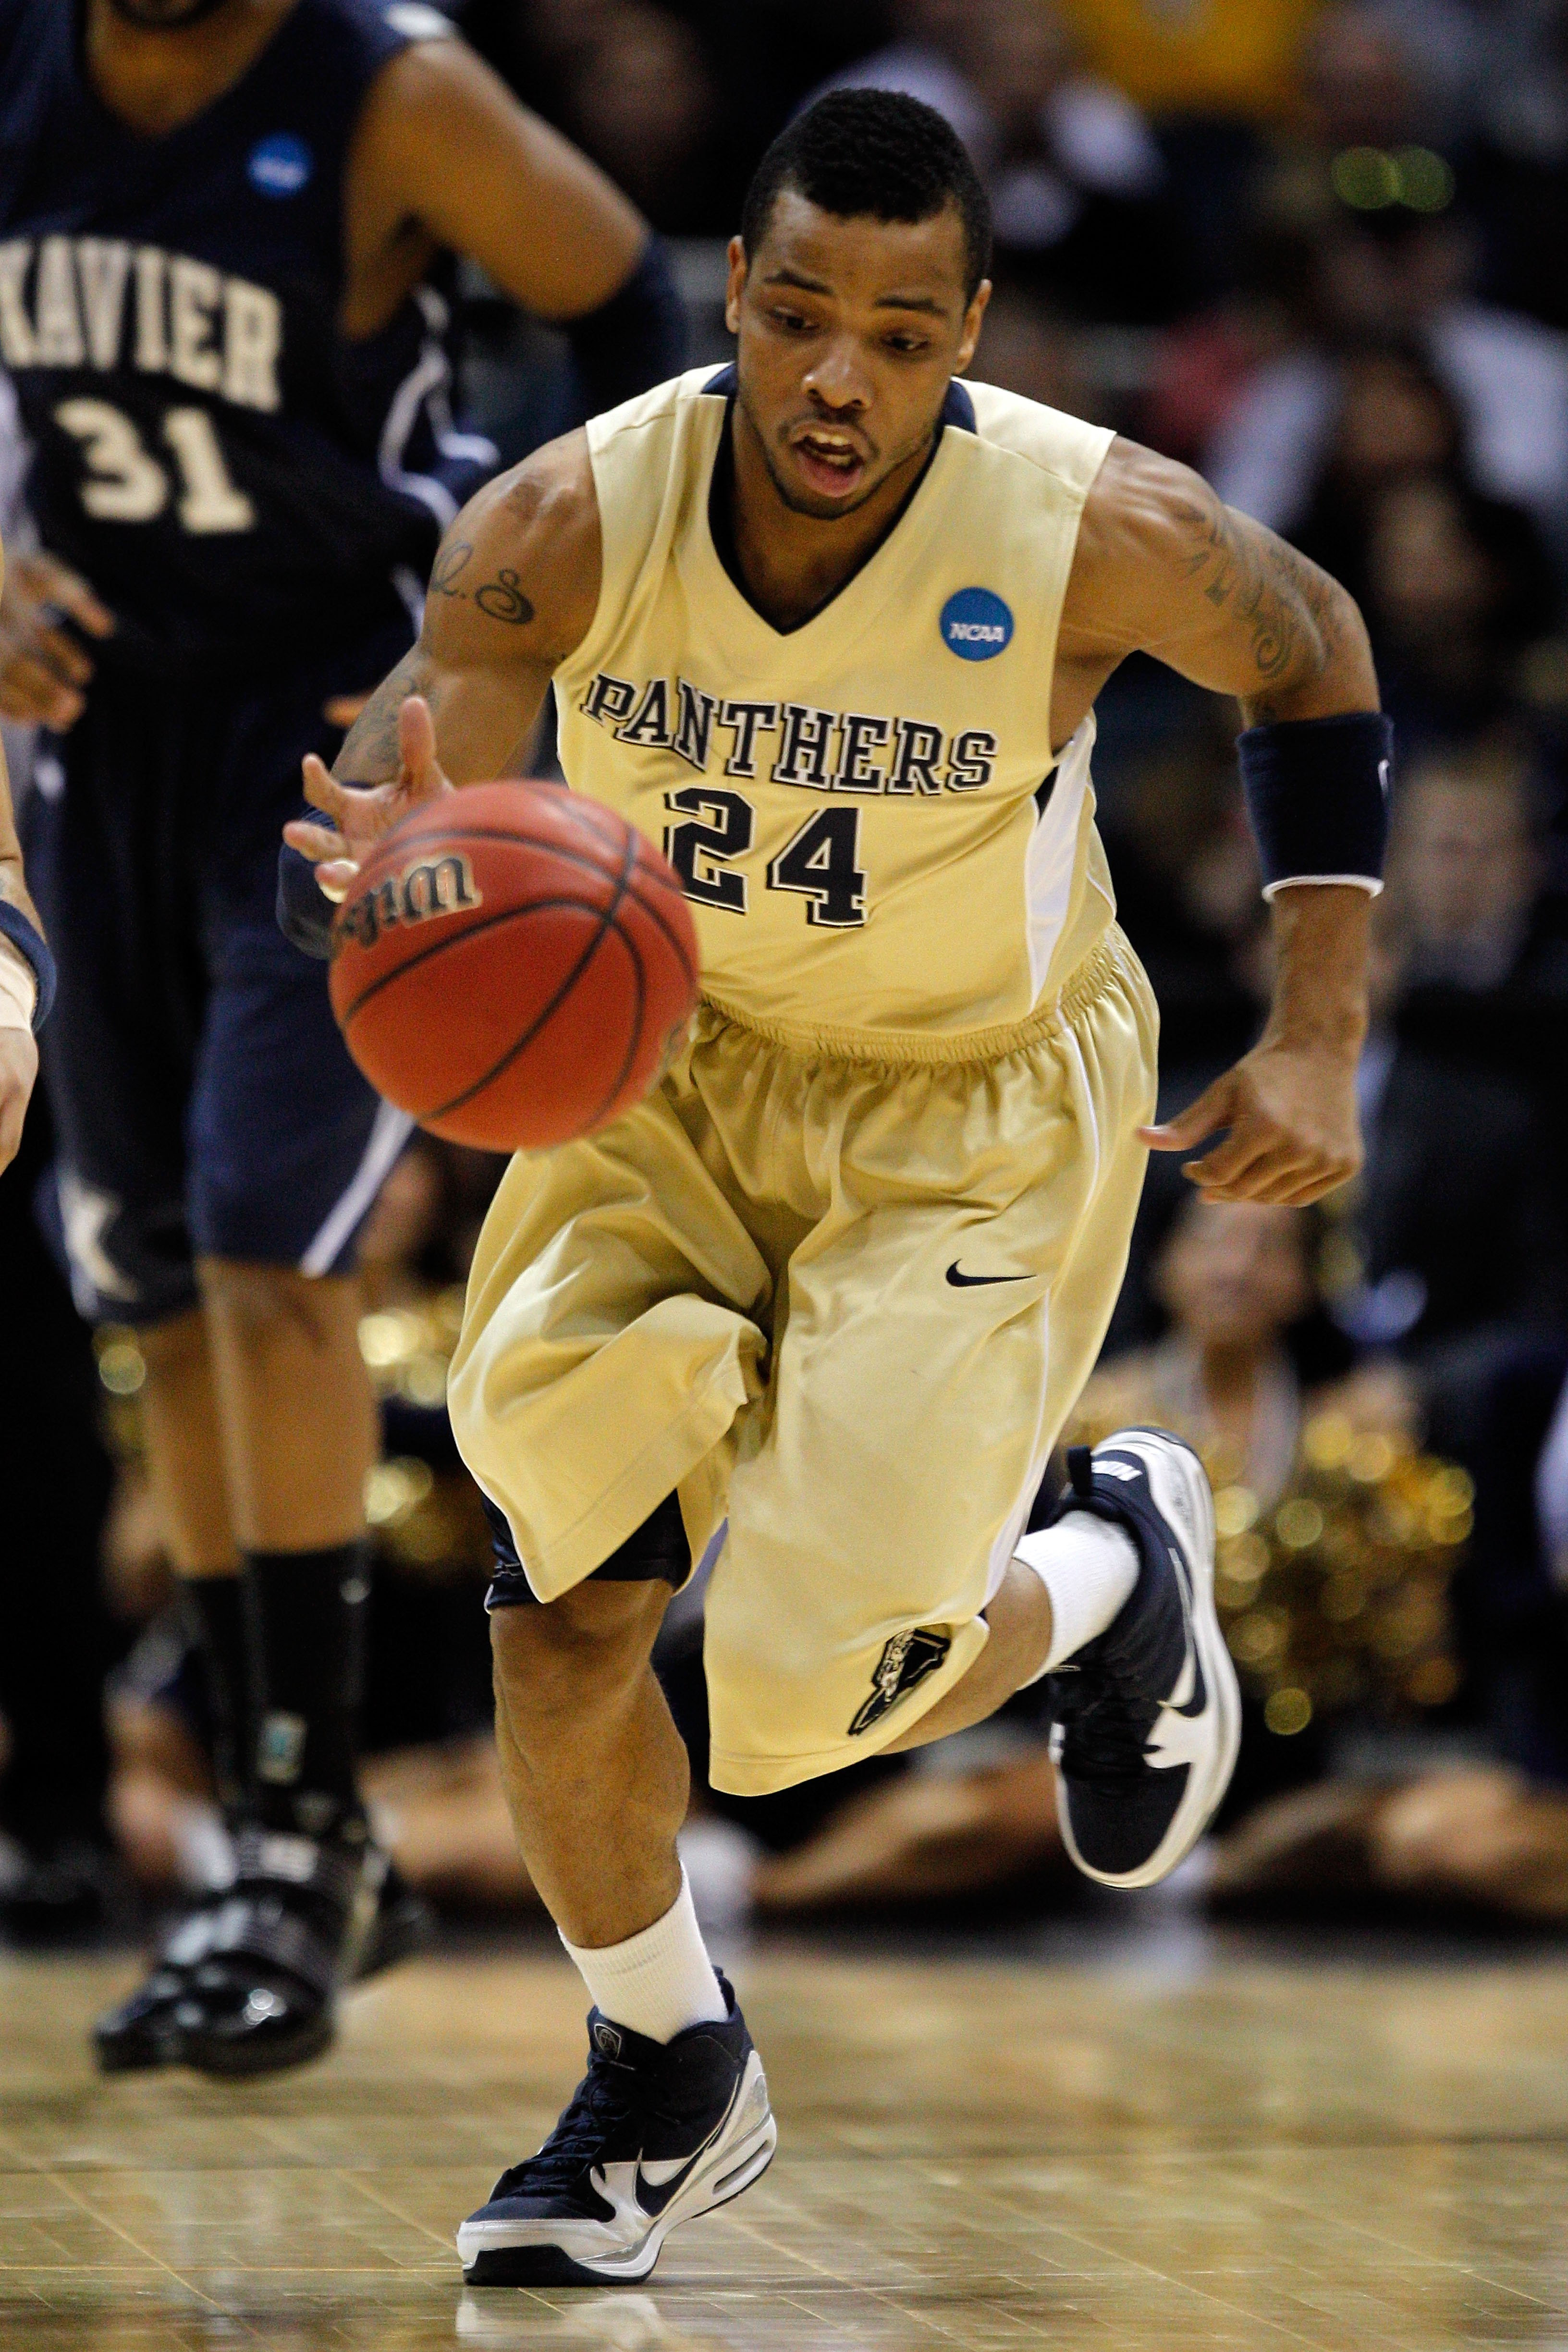 MILWAUKEE - MARCH 21:  Jermaine Dixon #24 of the Pittsburgh Panthers moves the ball against the Xavier Musketeers during the second round of the 2010 NCAA men's basketball tournament at the Bradley Center on March 21, 2010 in Milwaukee, Wisconsin.  (Photo